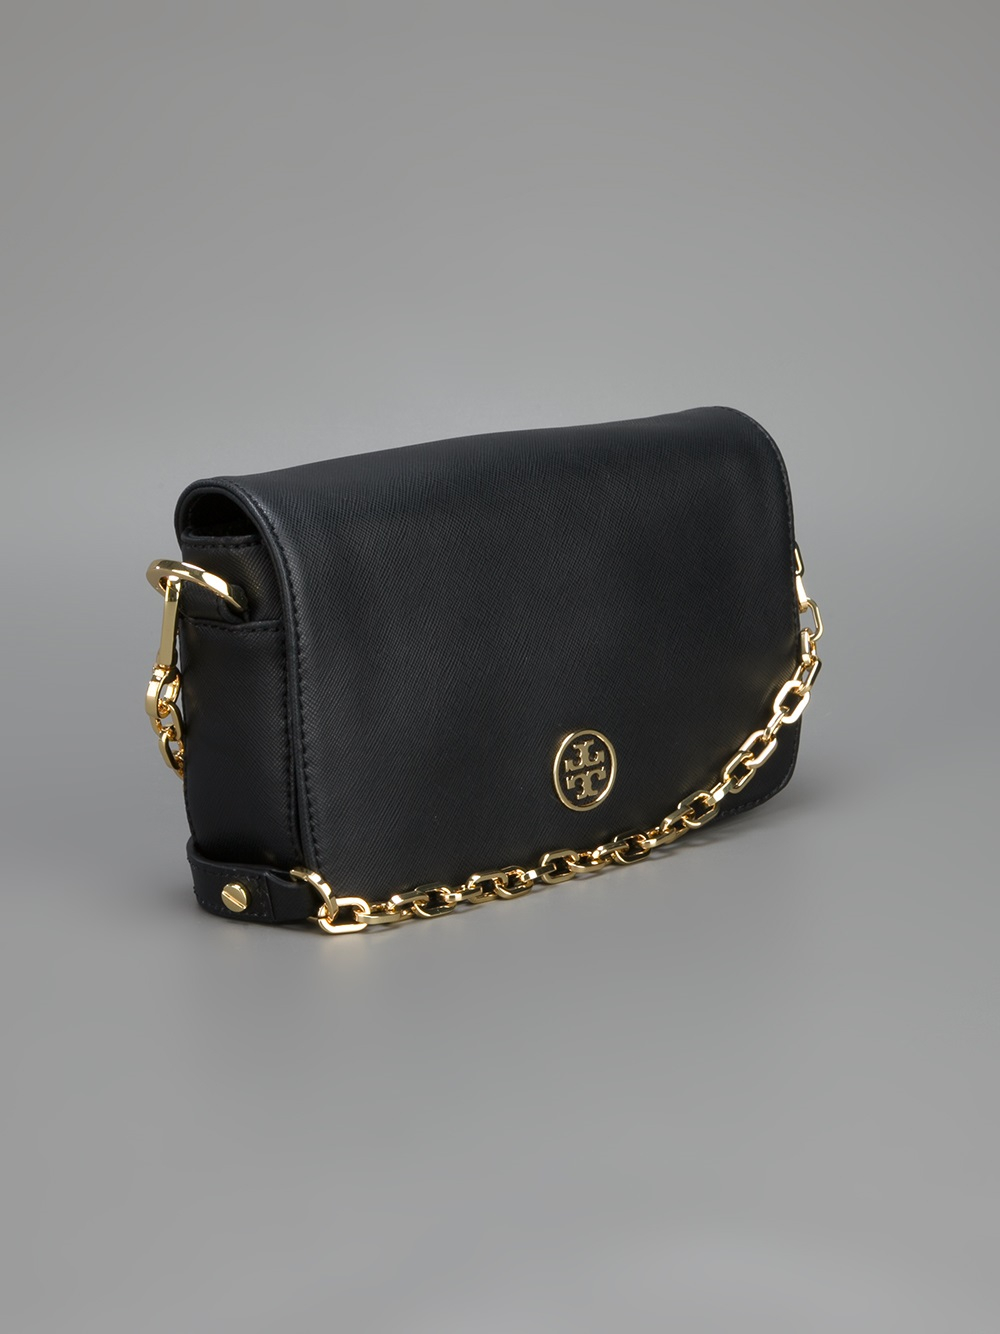 Tory burch Chain Strap Shoulder Bag in Black | Lyst